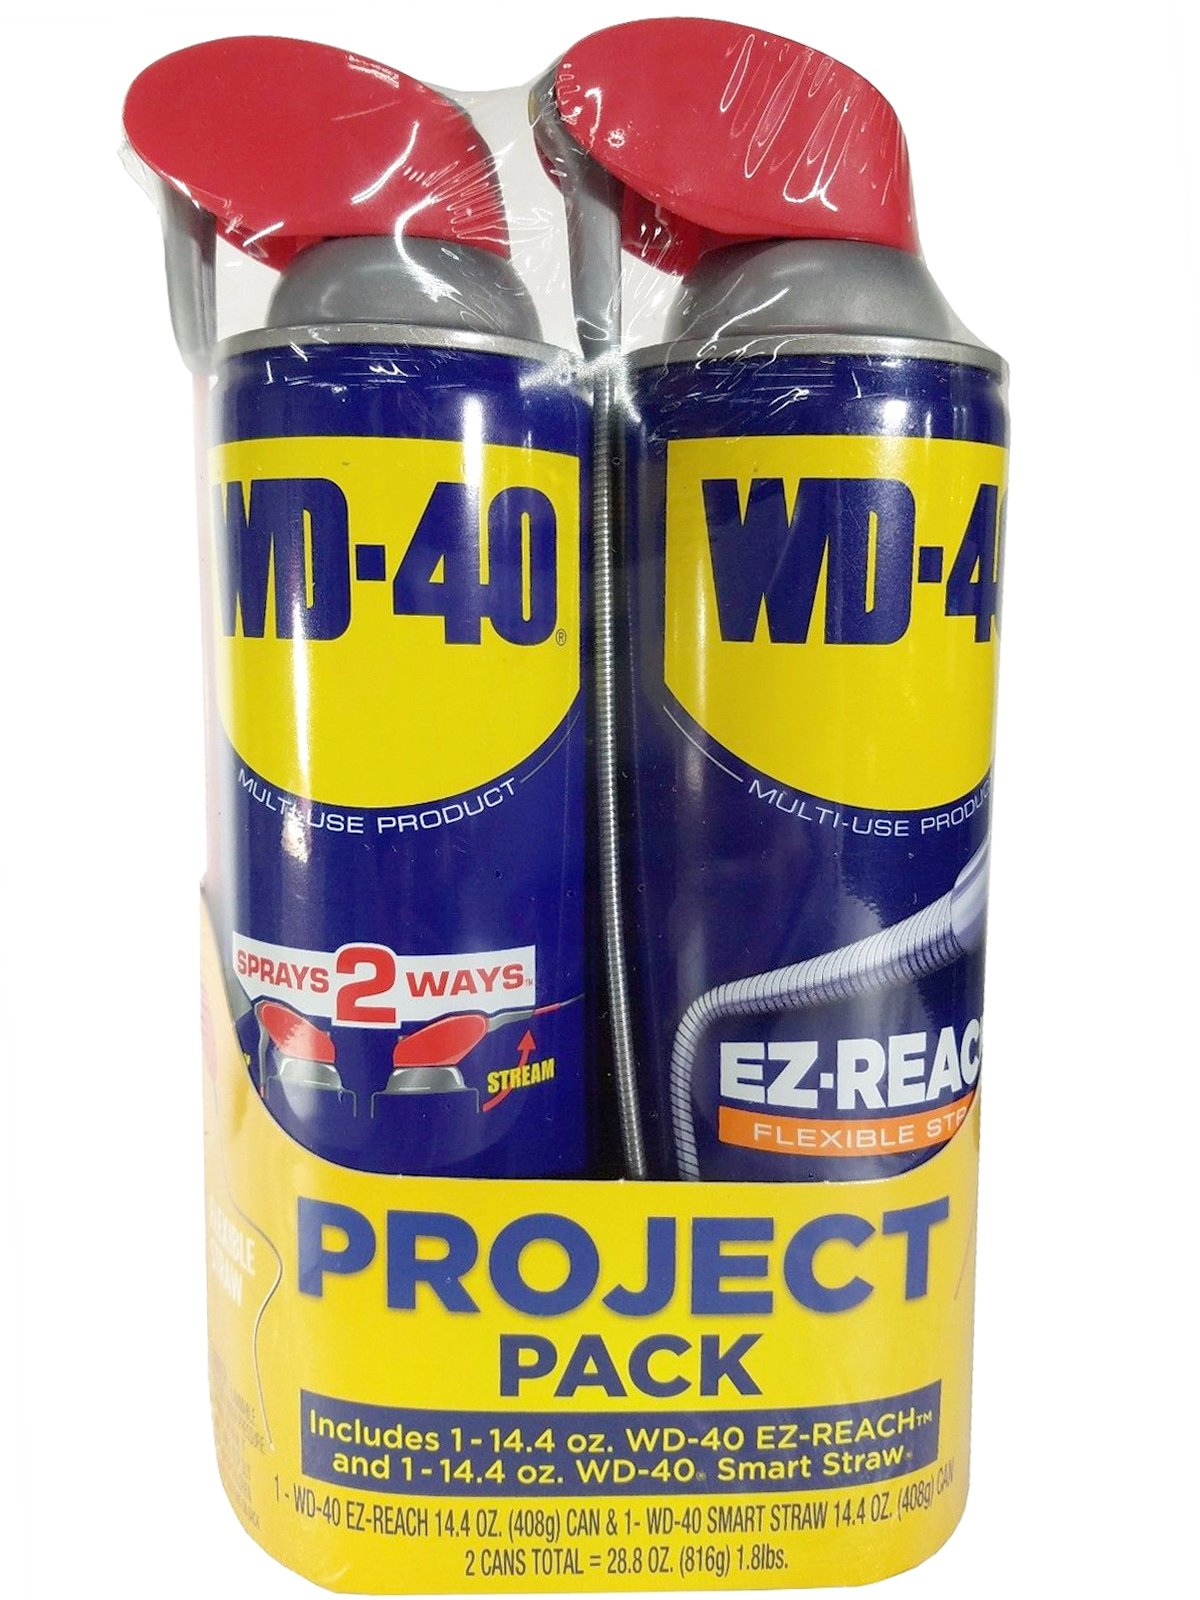 WD-40 EZ-Reach & Smart Straw 14.4oz (2-Pack) Combo Project Pack Multi-Use